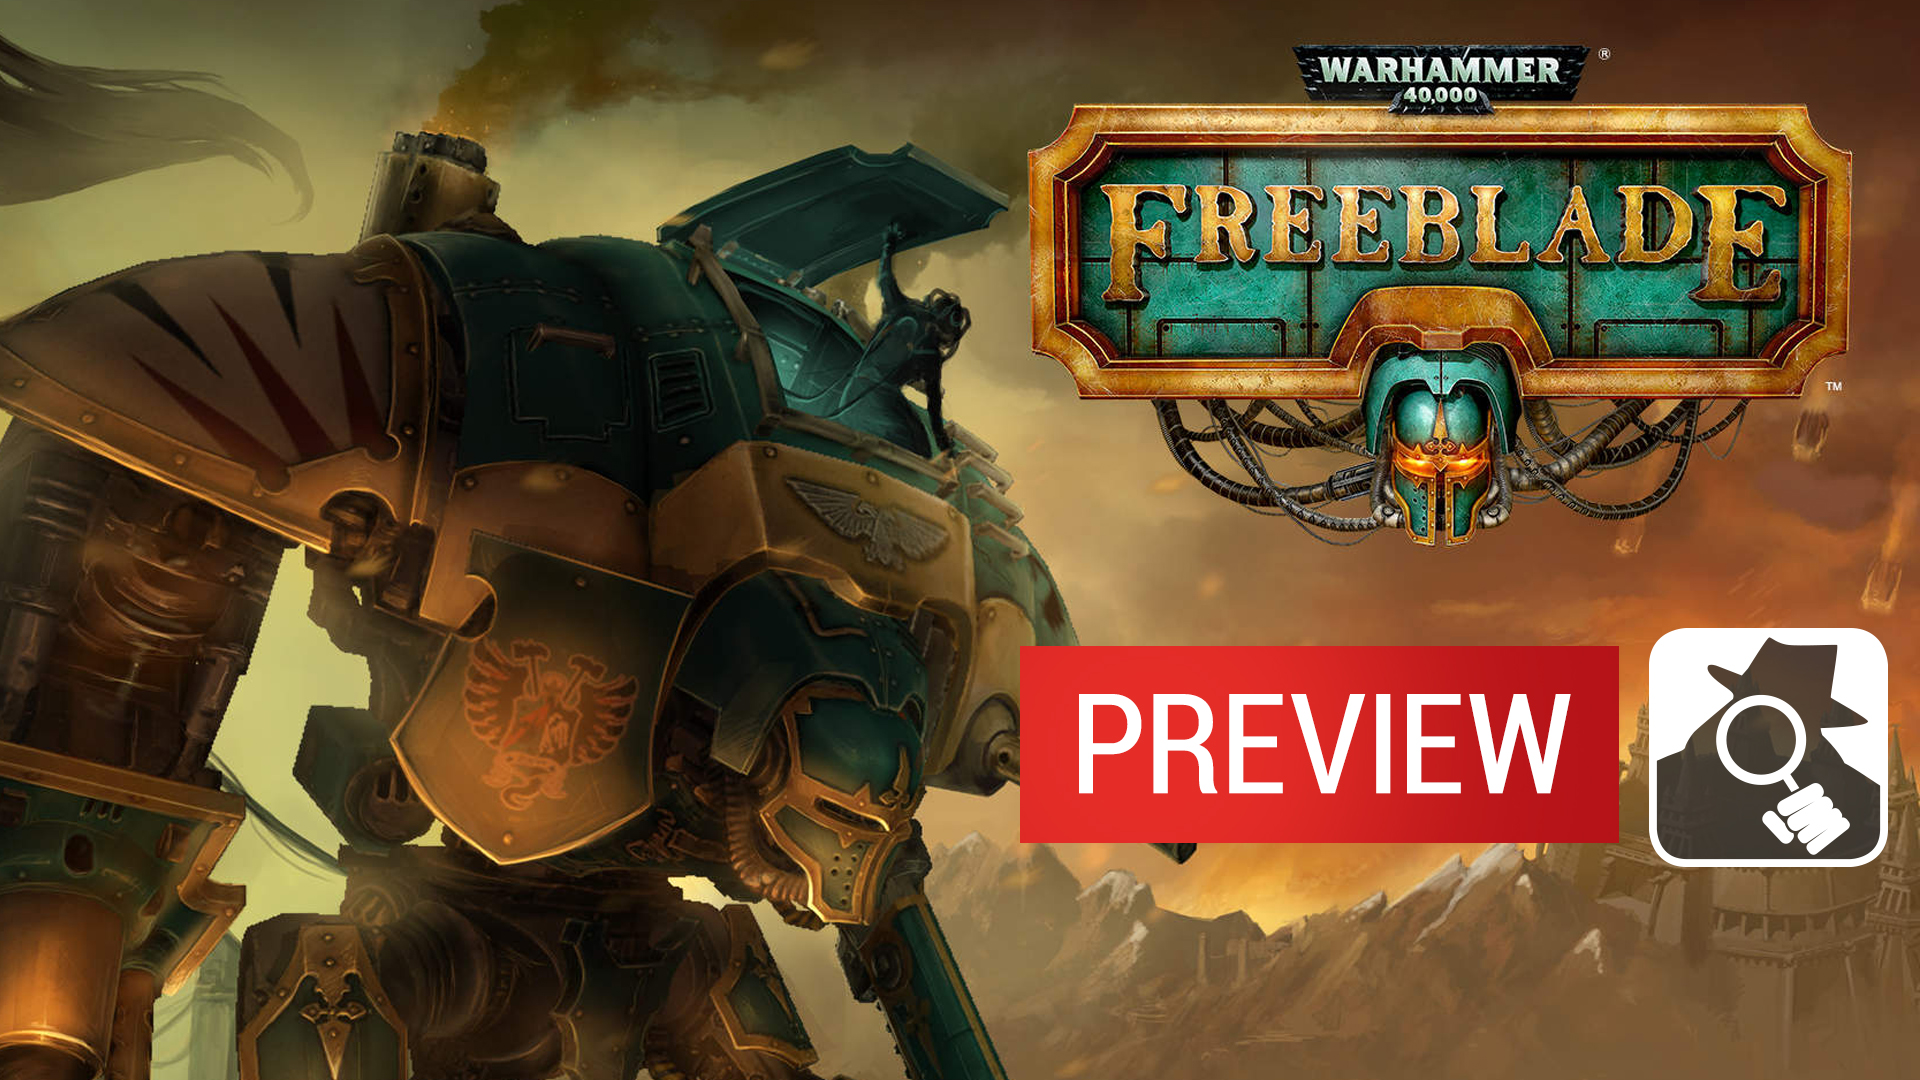 Guns, missiles, and massive chainswords: see Warhammer 40,000: Freeblade in action